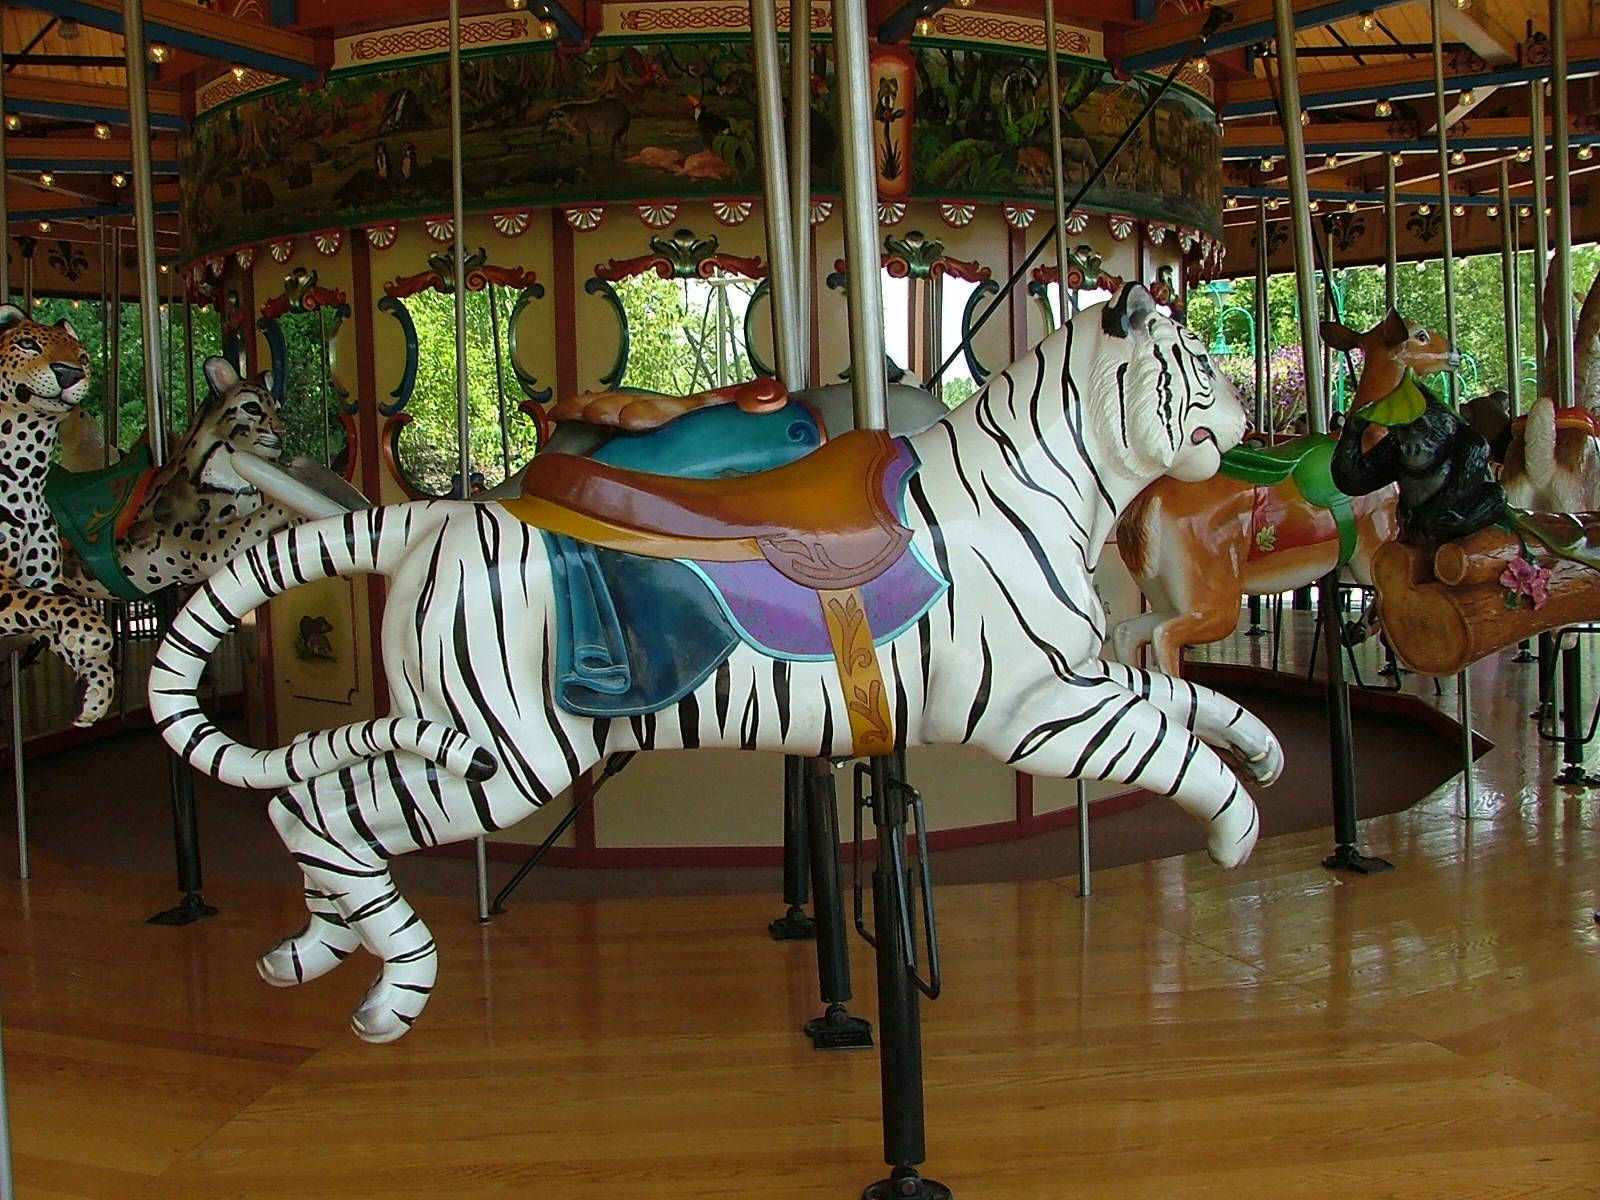 Carousel Animals | Nashville Zoo - Wild Animal Carousel